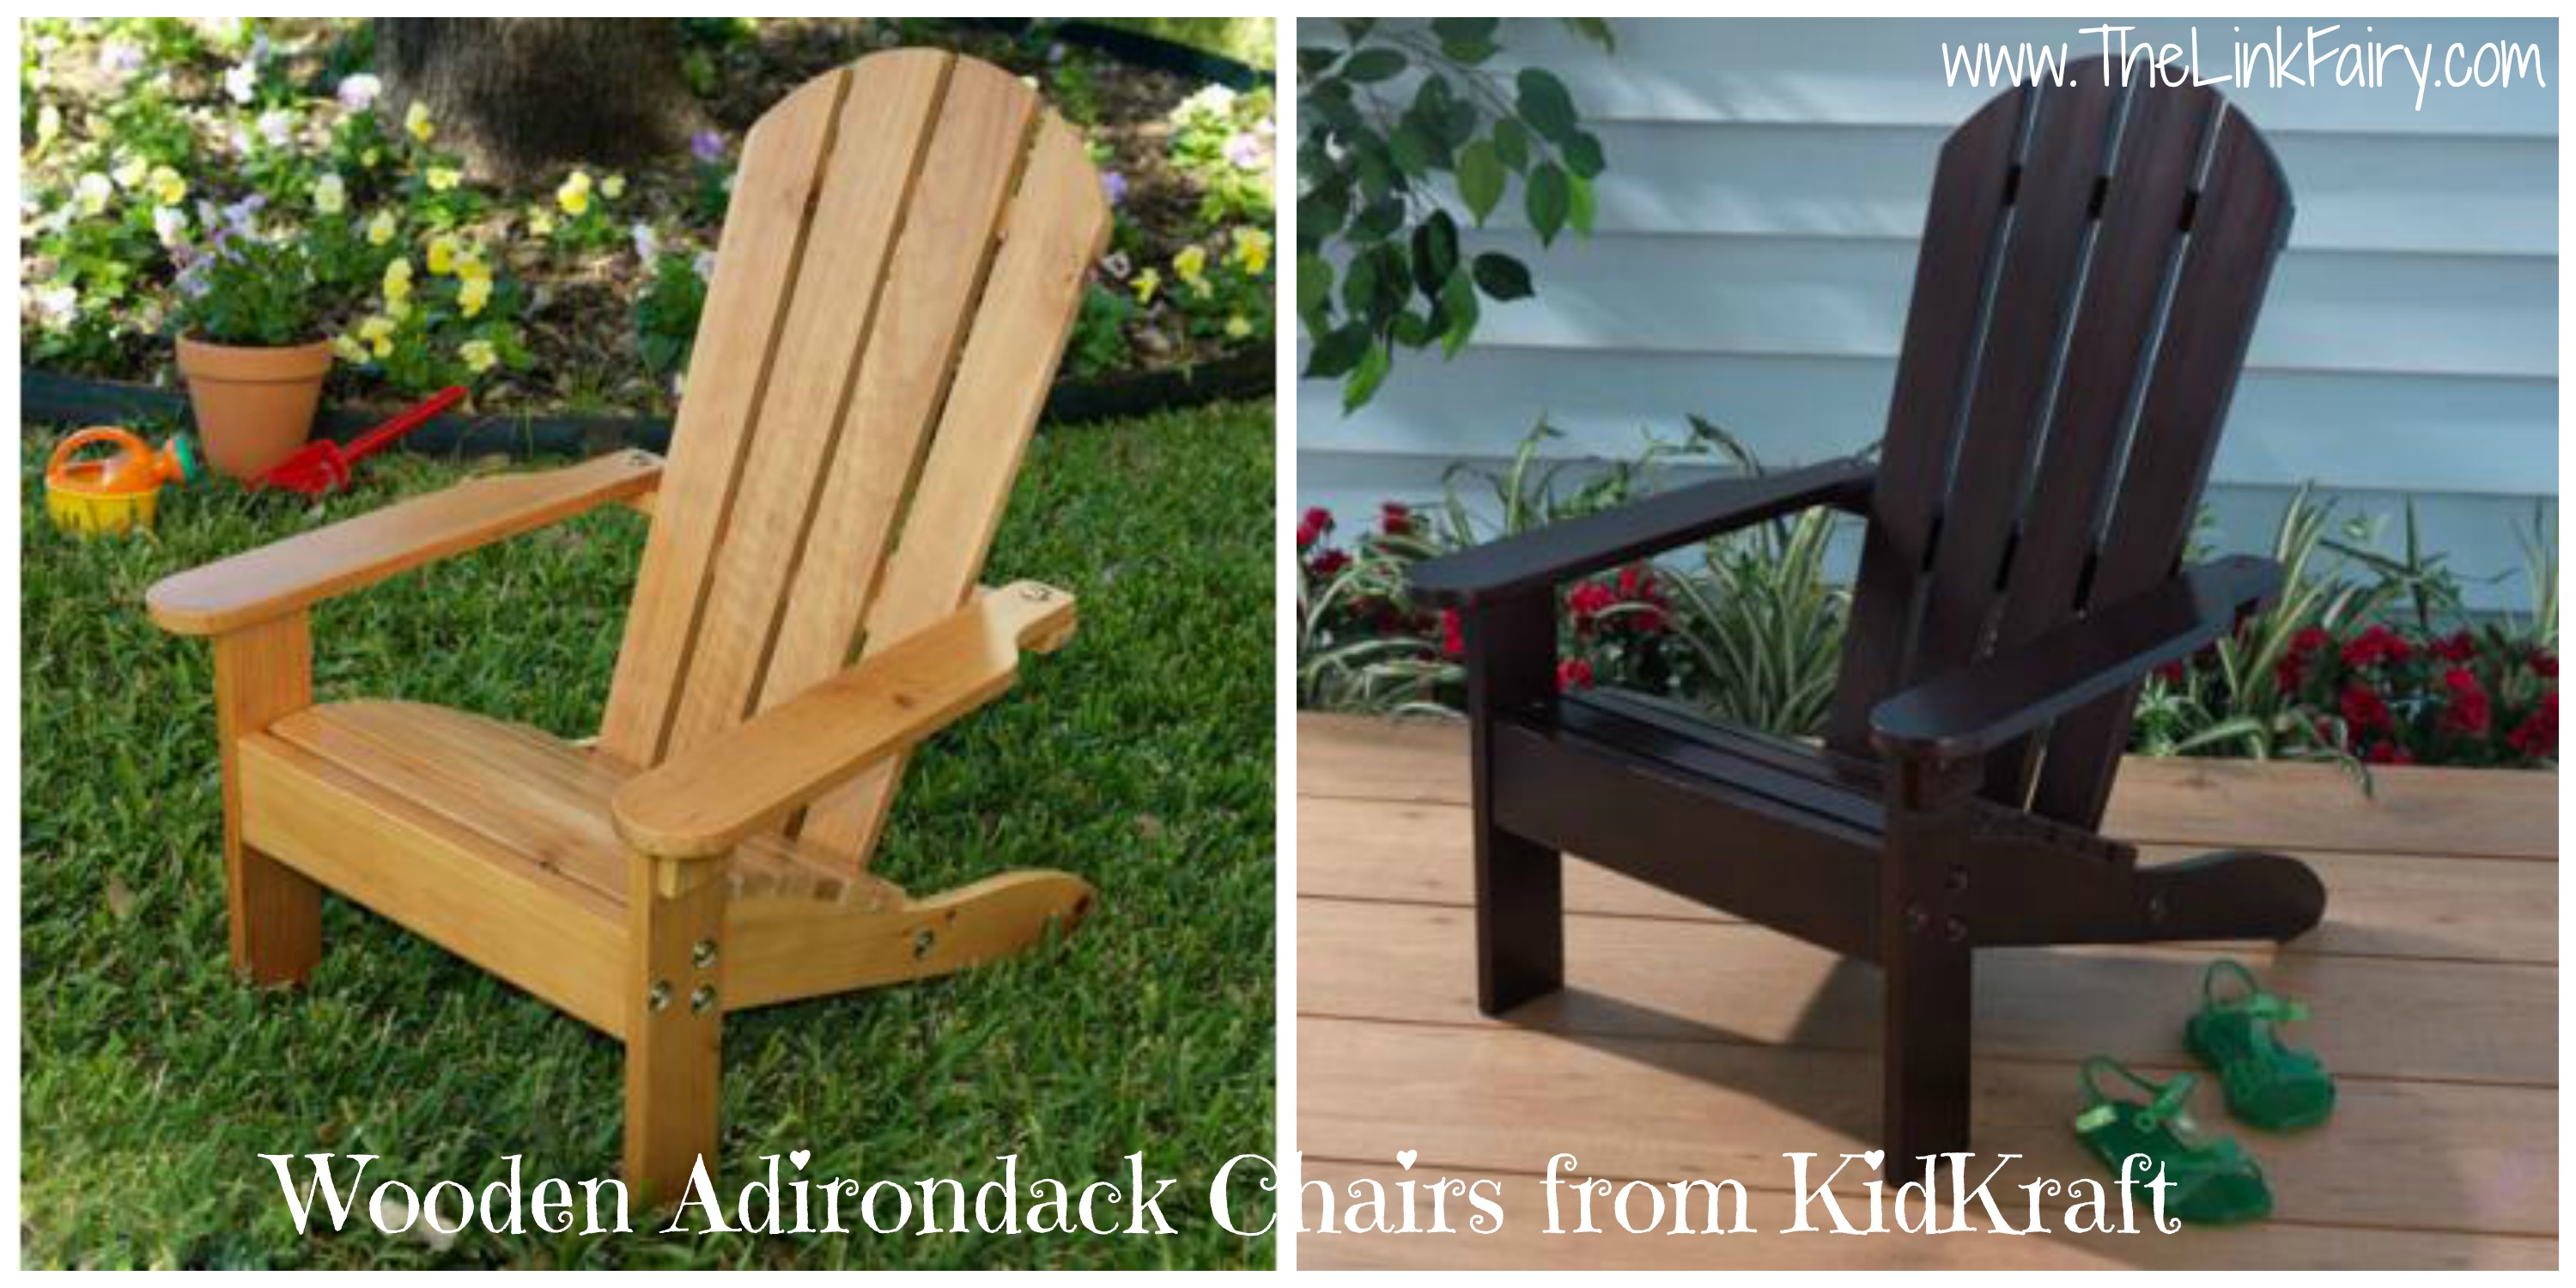 Child Patio Chair Give Your Kids A Fun Place To Sit With Adirondack Chairs